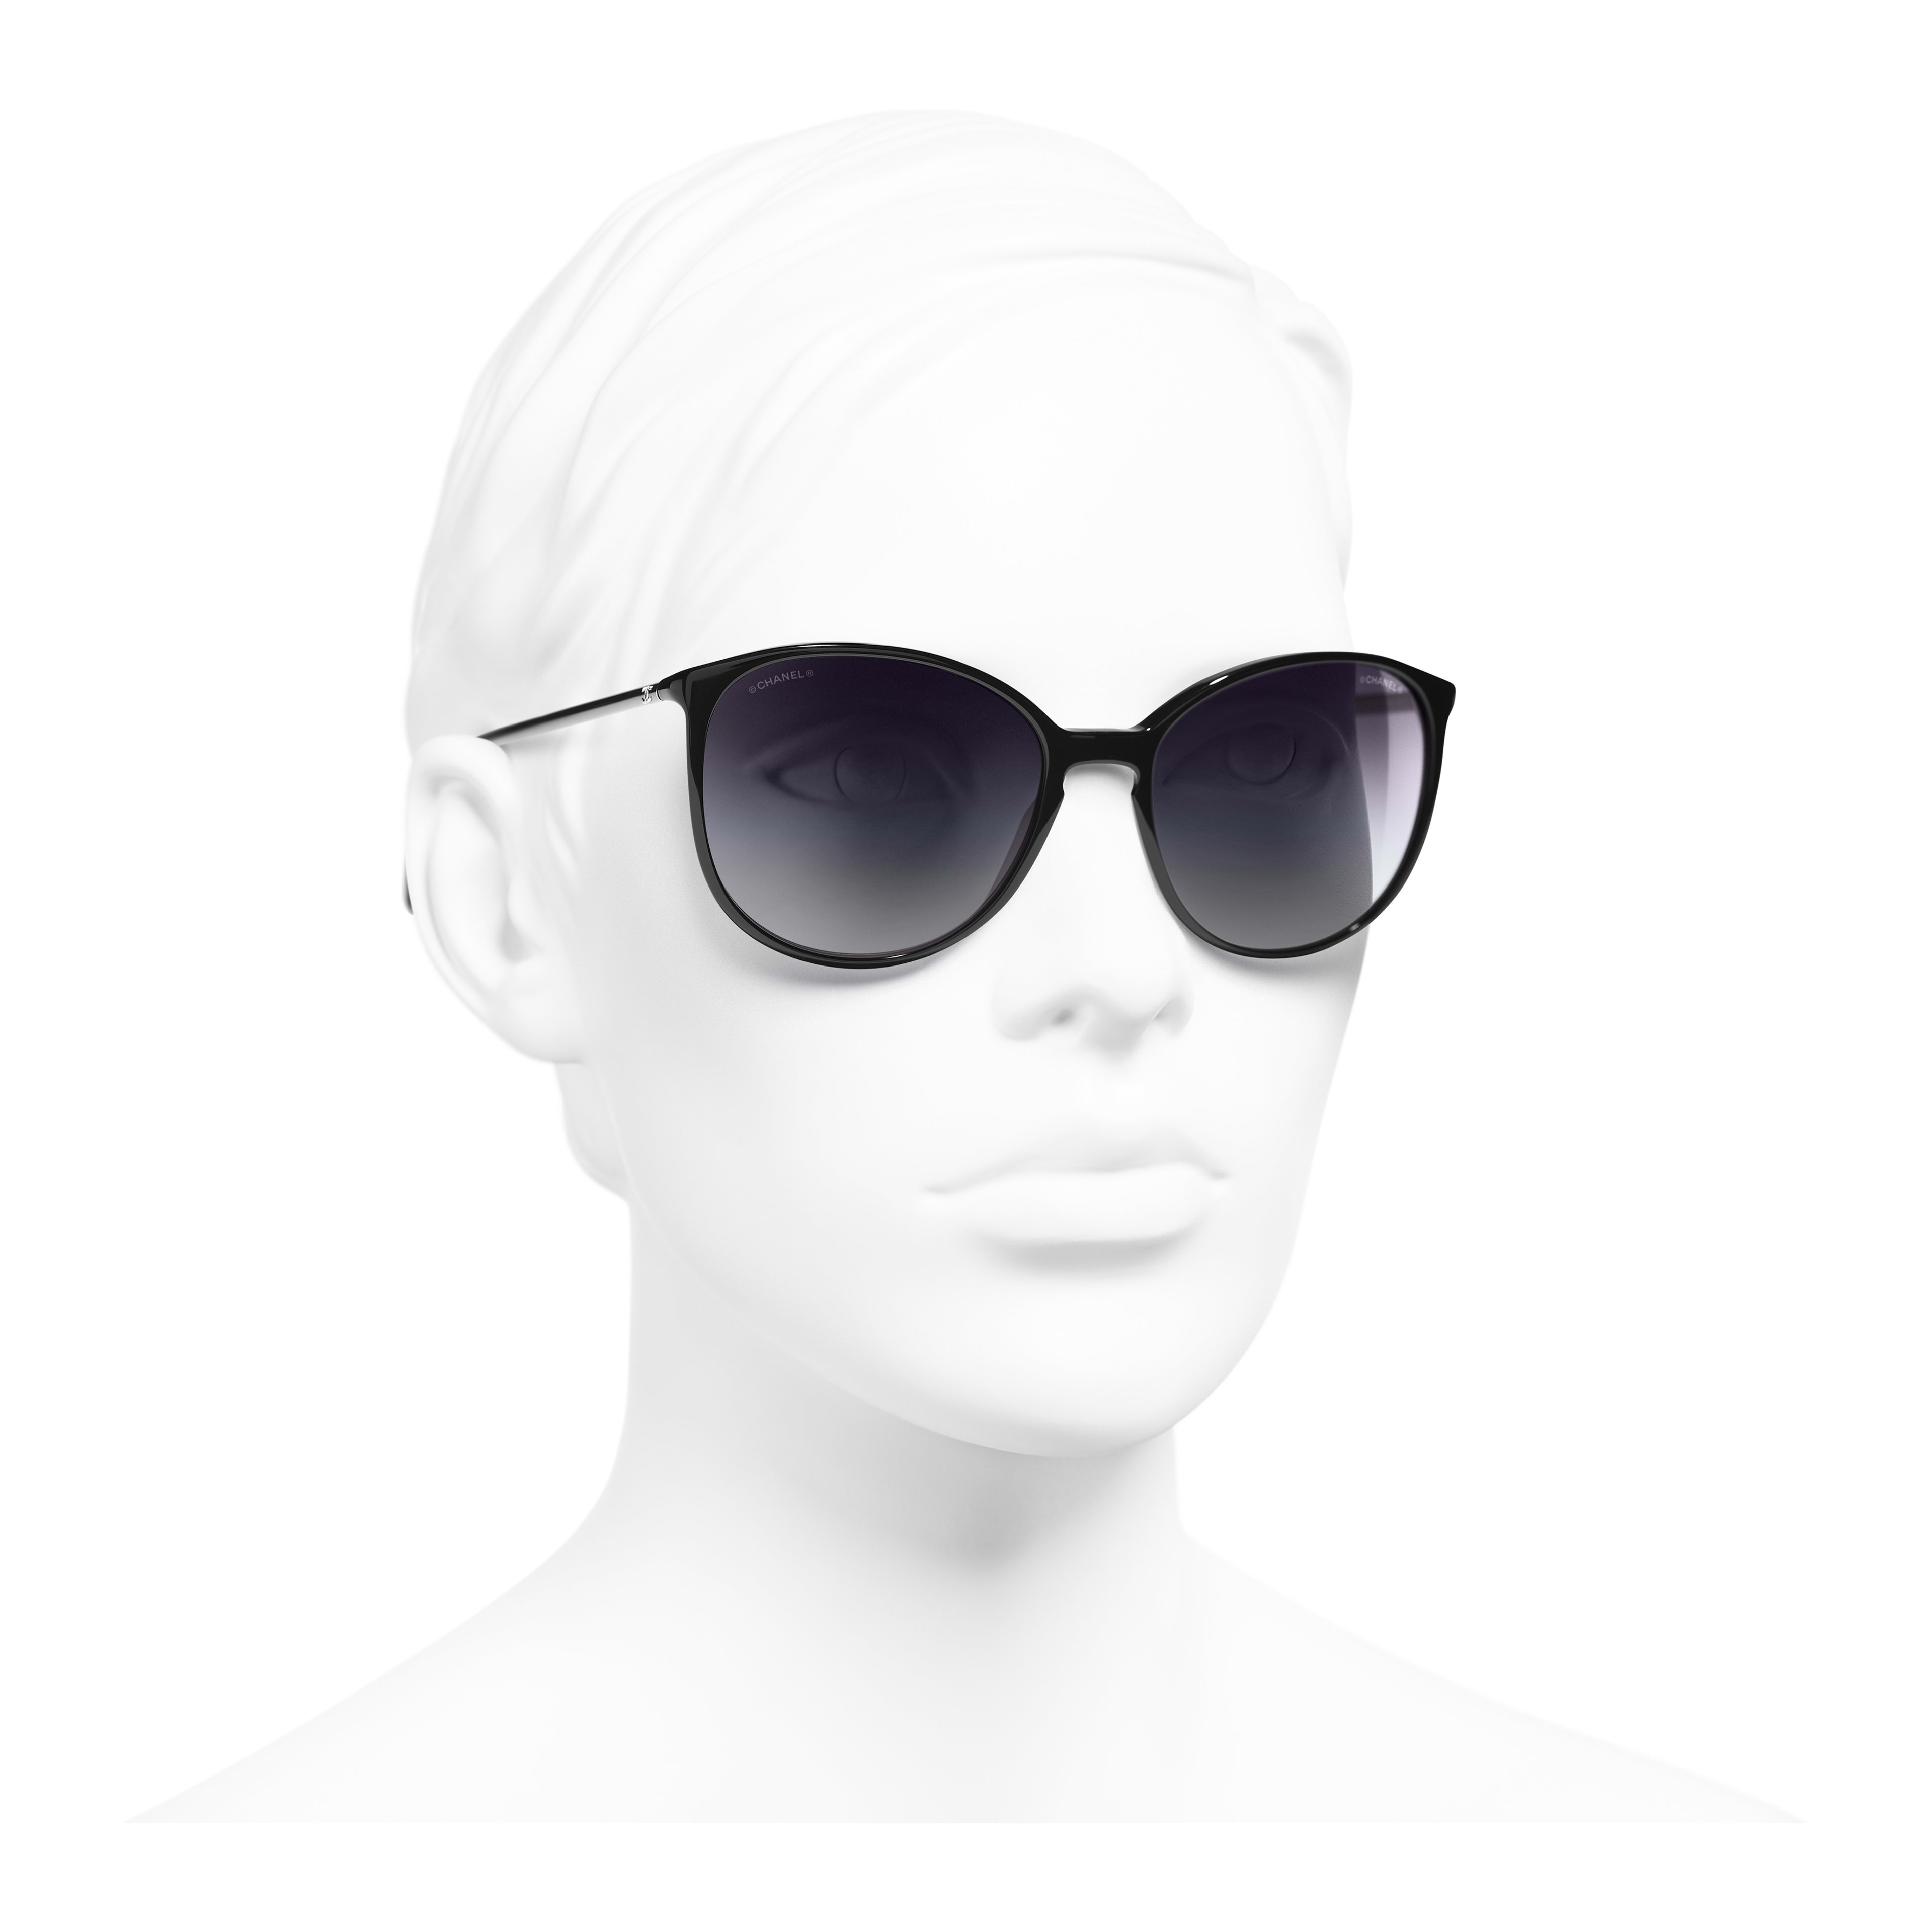 Butterfly Sunglasses Acetate Black - - see full sized version